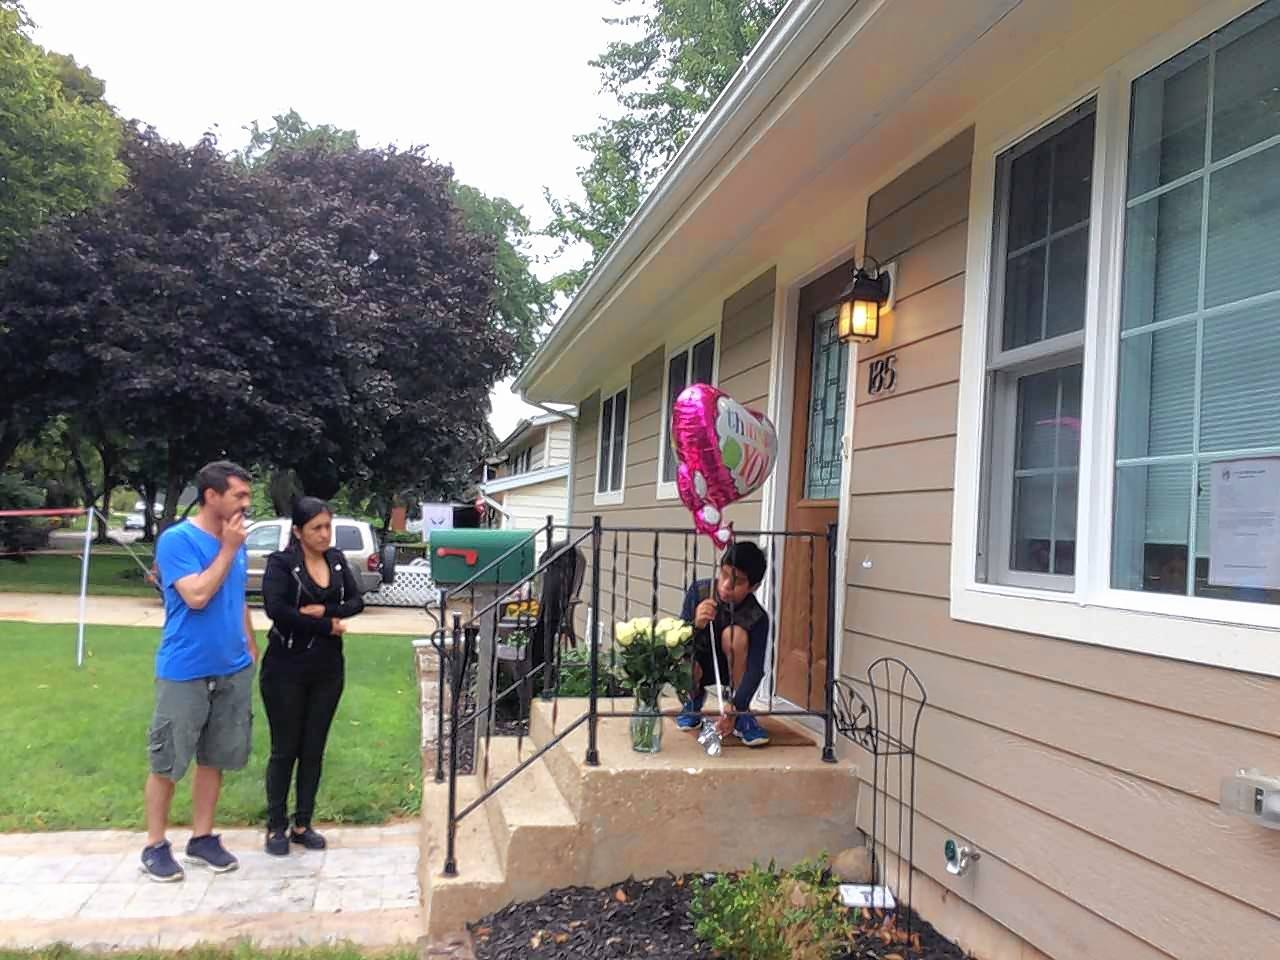 Neighbors, from left, Juan Viveros, Maribel Hernandez watch Juan Viveros Jr., place a balloon on the porch of the home where a 31-year-old woman and a 15-year-old girl were shot and killed Thursday.